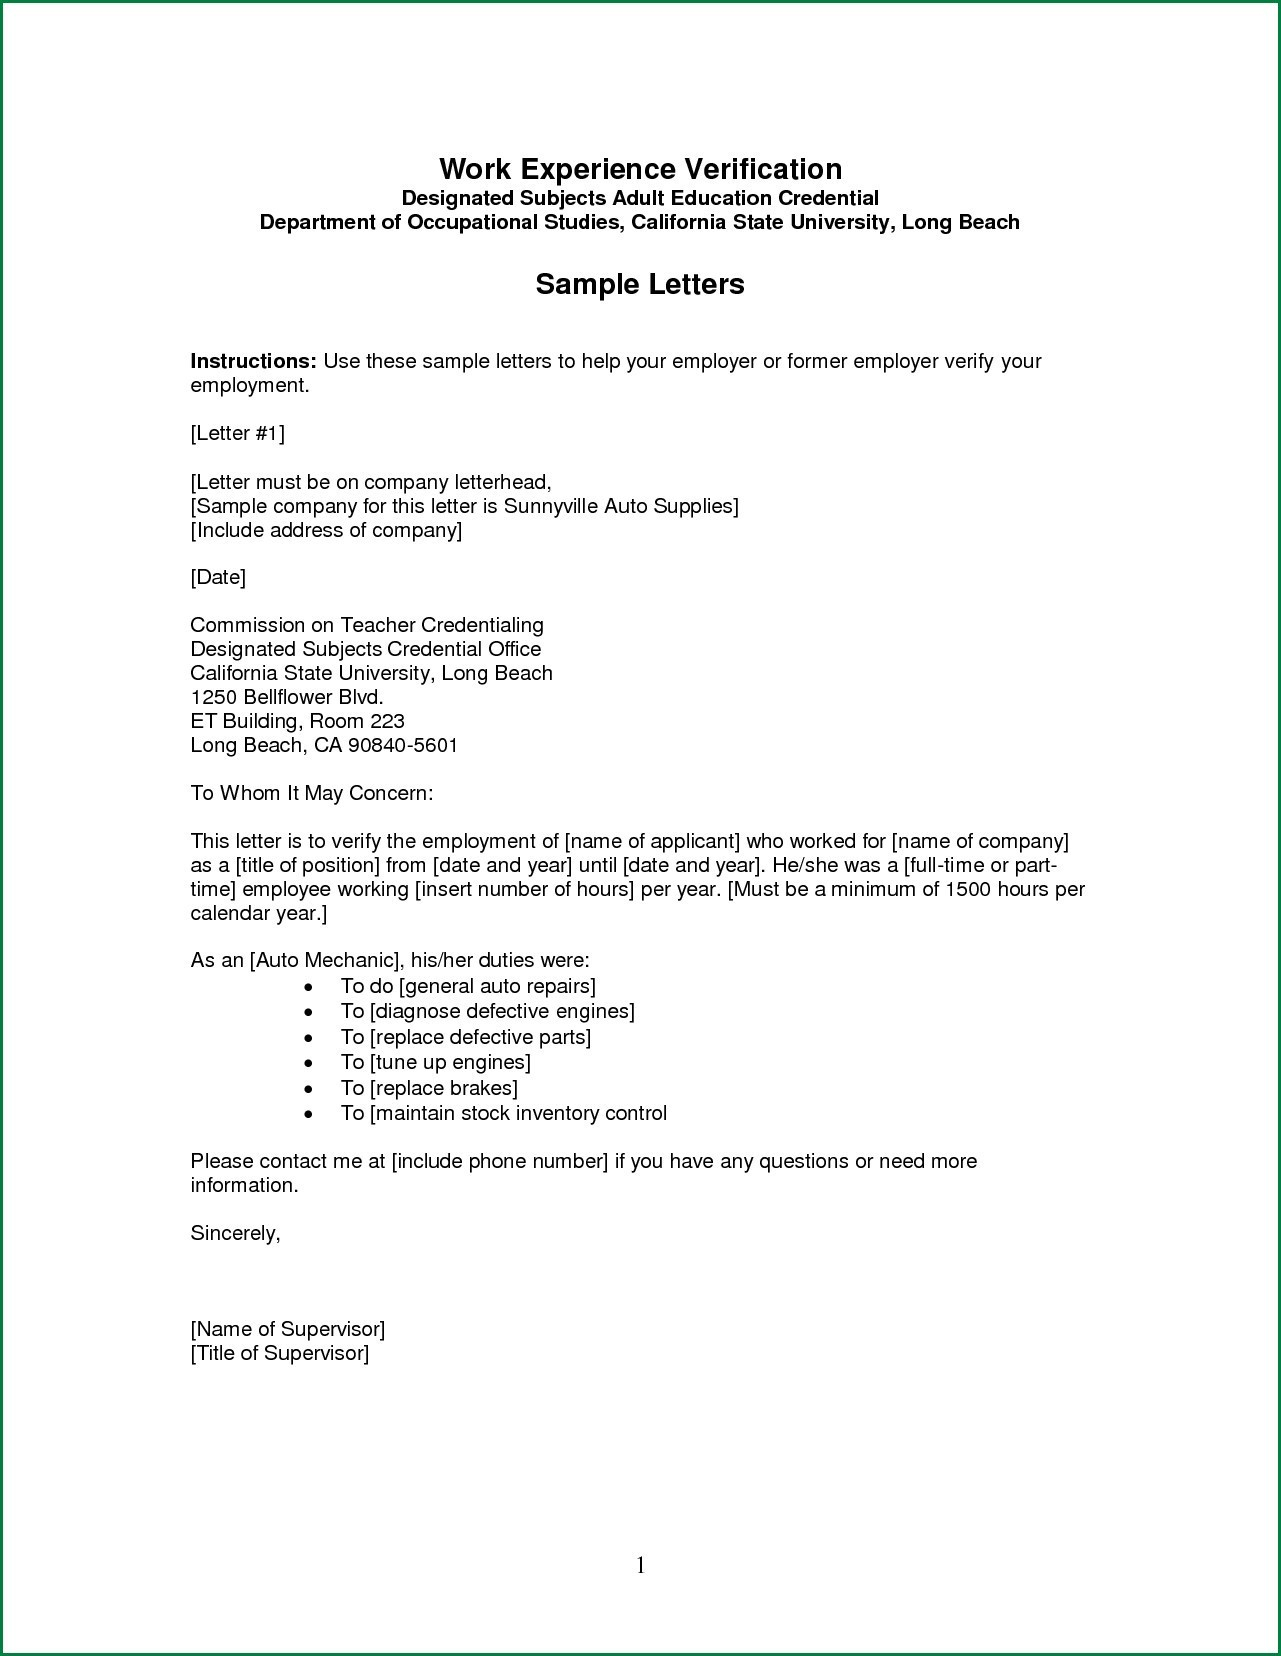 proof of employment letter template Collection-proof of employment letter template 11-i